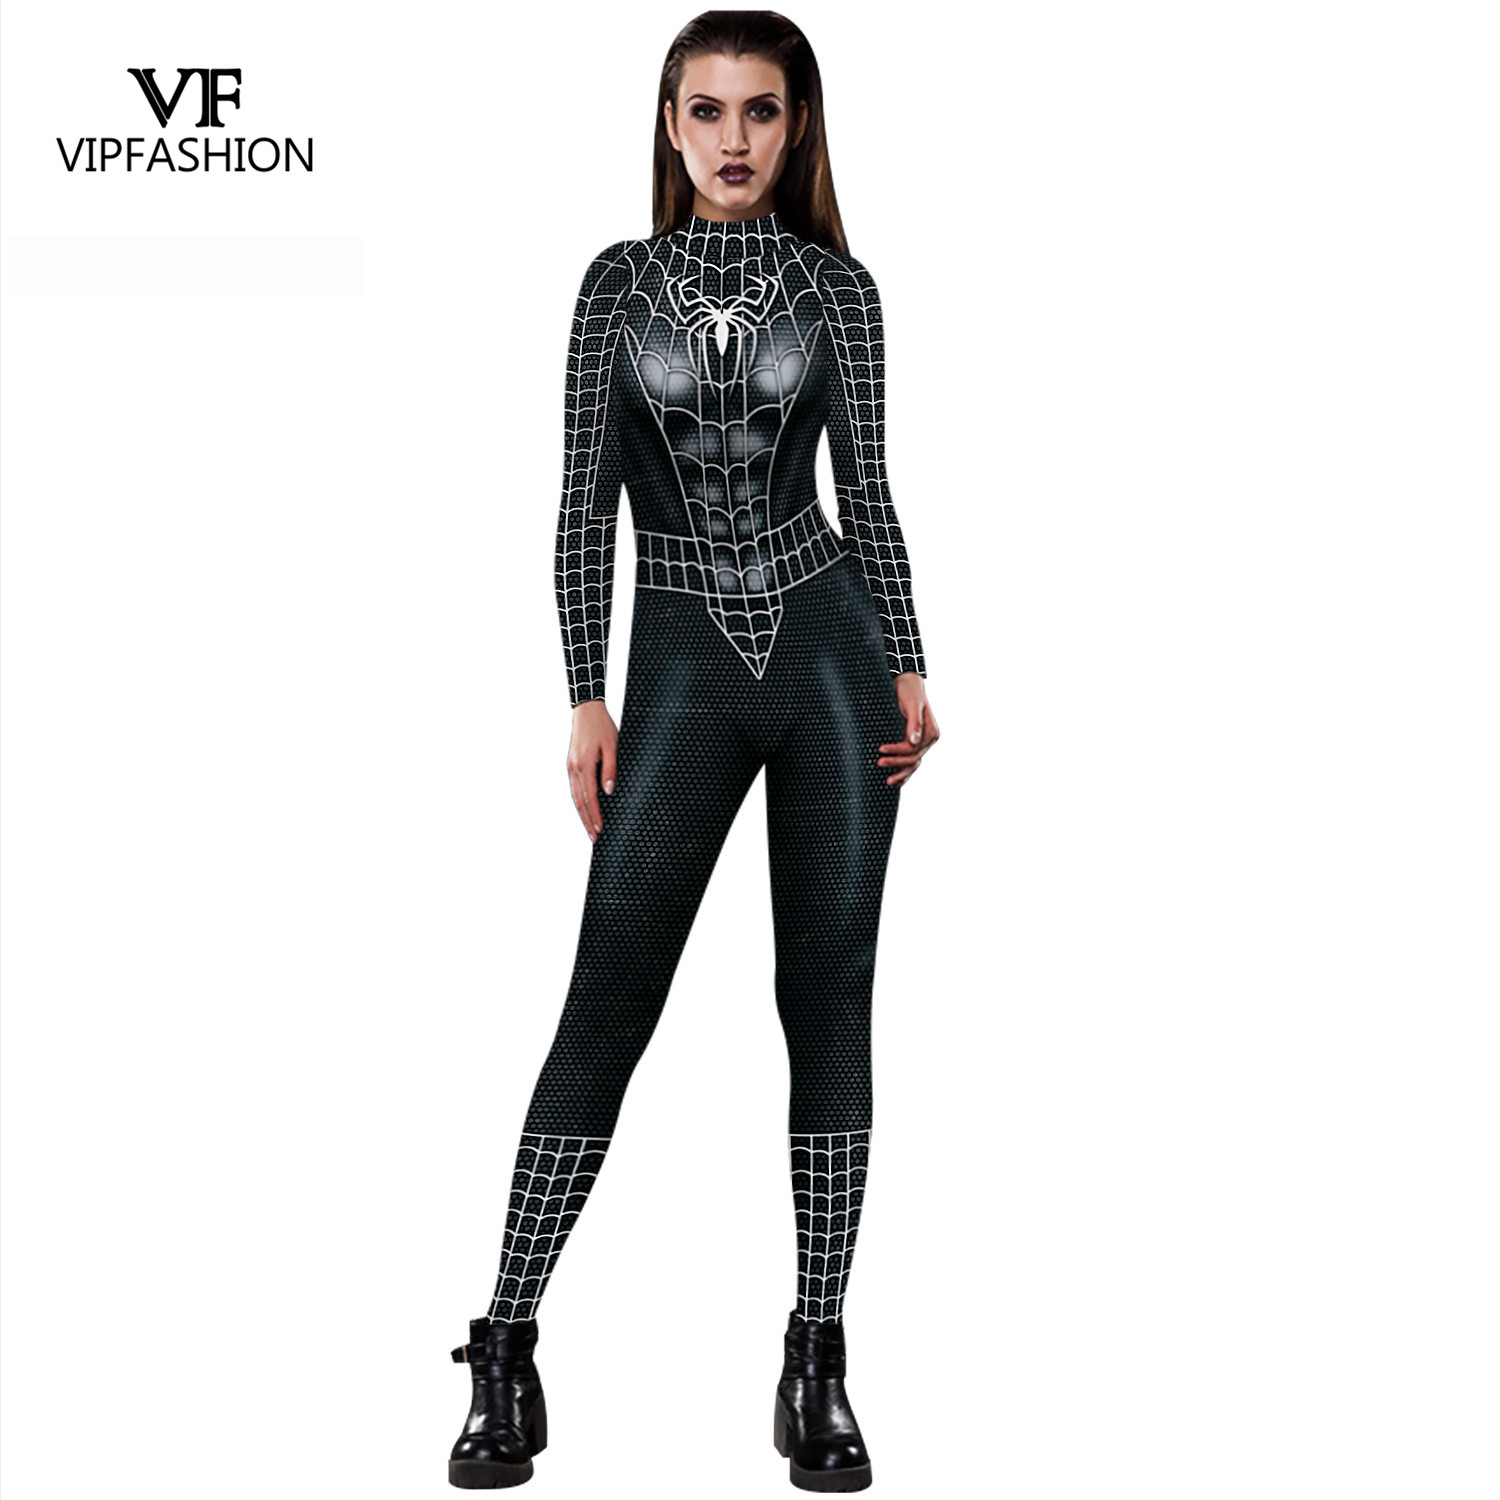 VIP FASHION 2019 New Cosplay 3D Black SpiderMan Printed Super Hero Costume Women Marvel Movie Cosplay Bodysuit For Women